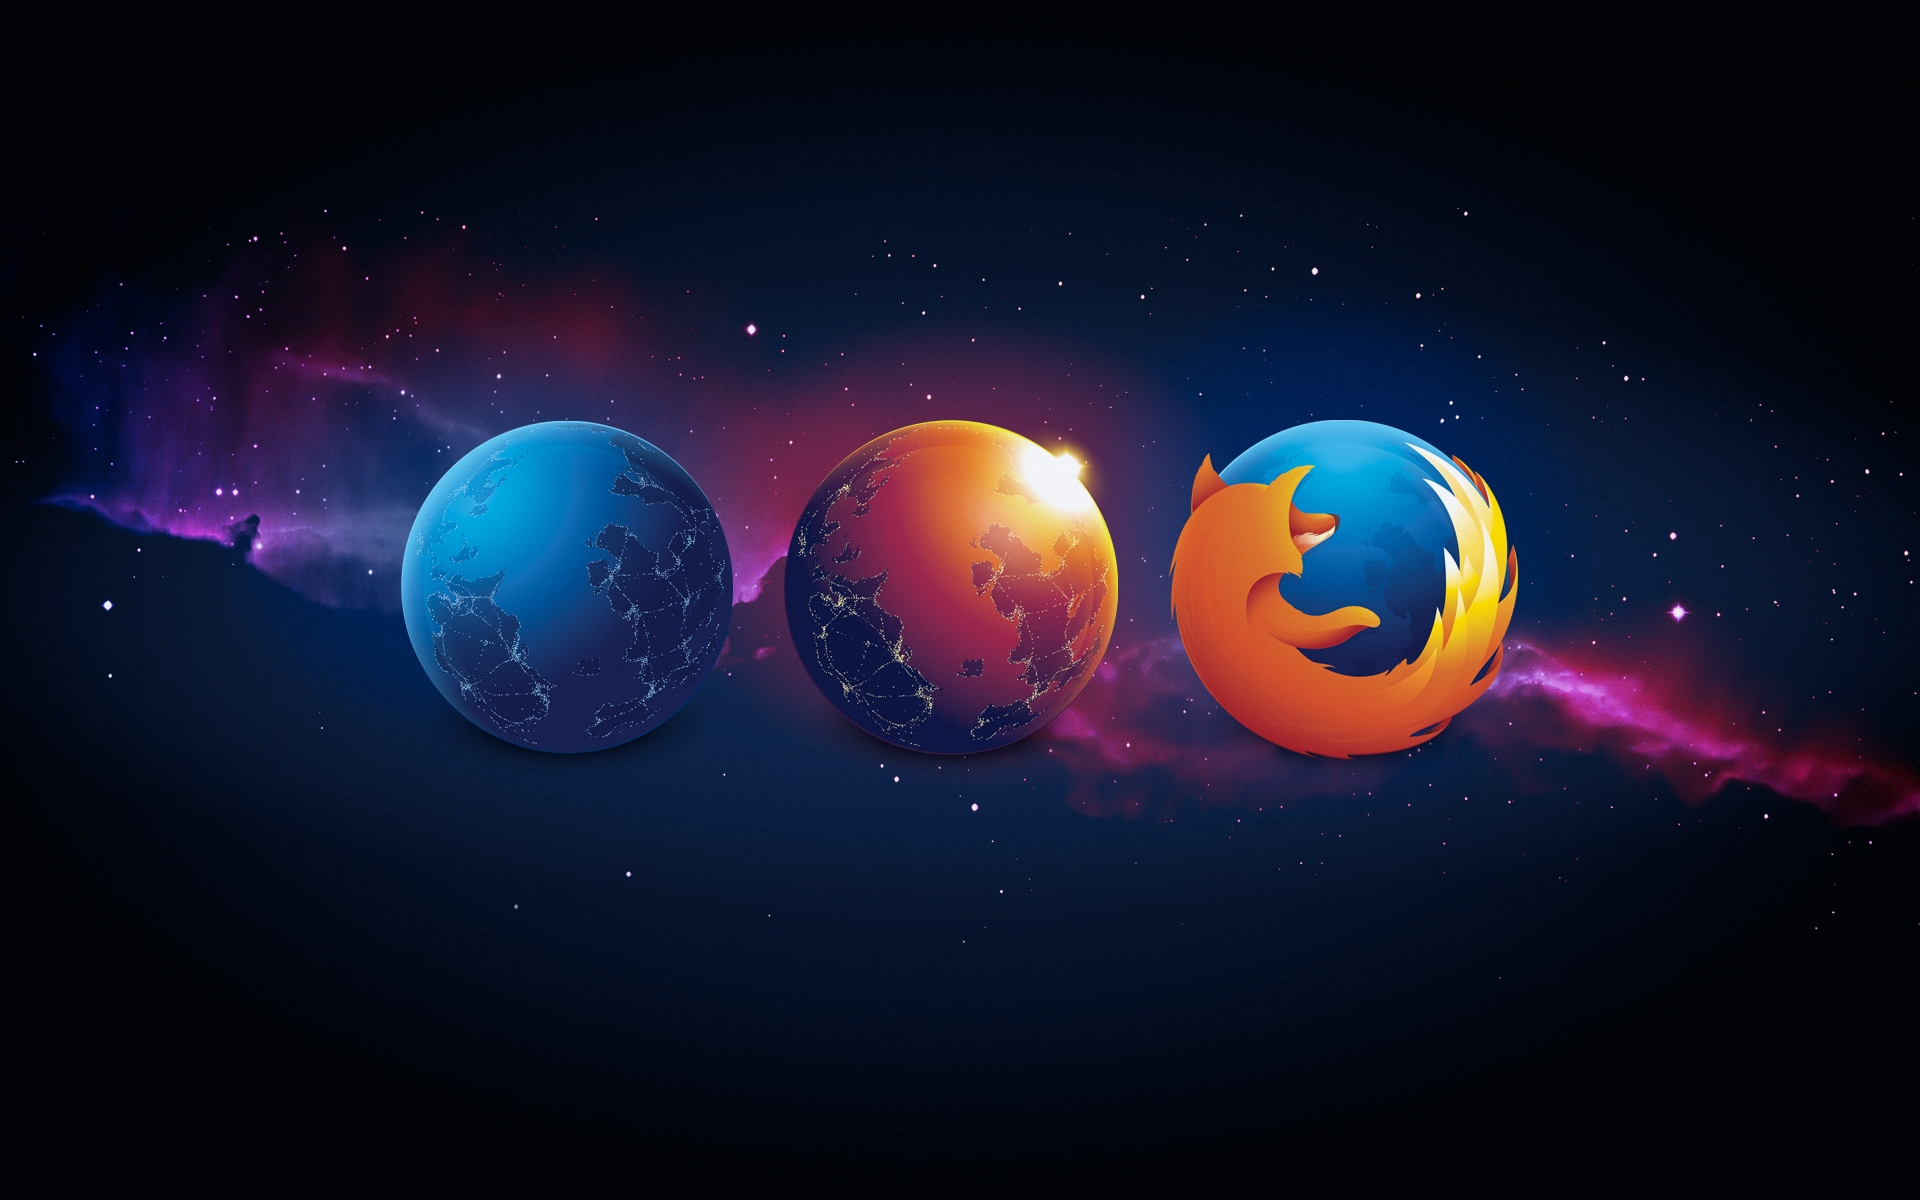 Firefox hd wallpaper background image 1920x1200 id - How to change firefox background image ...